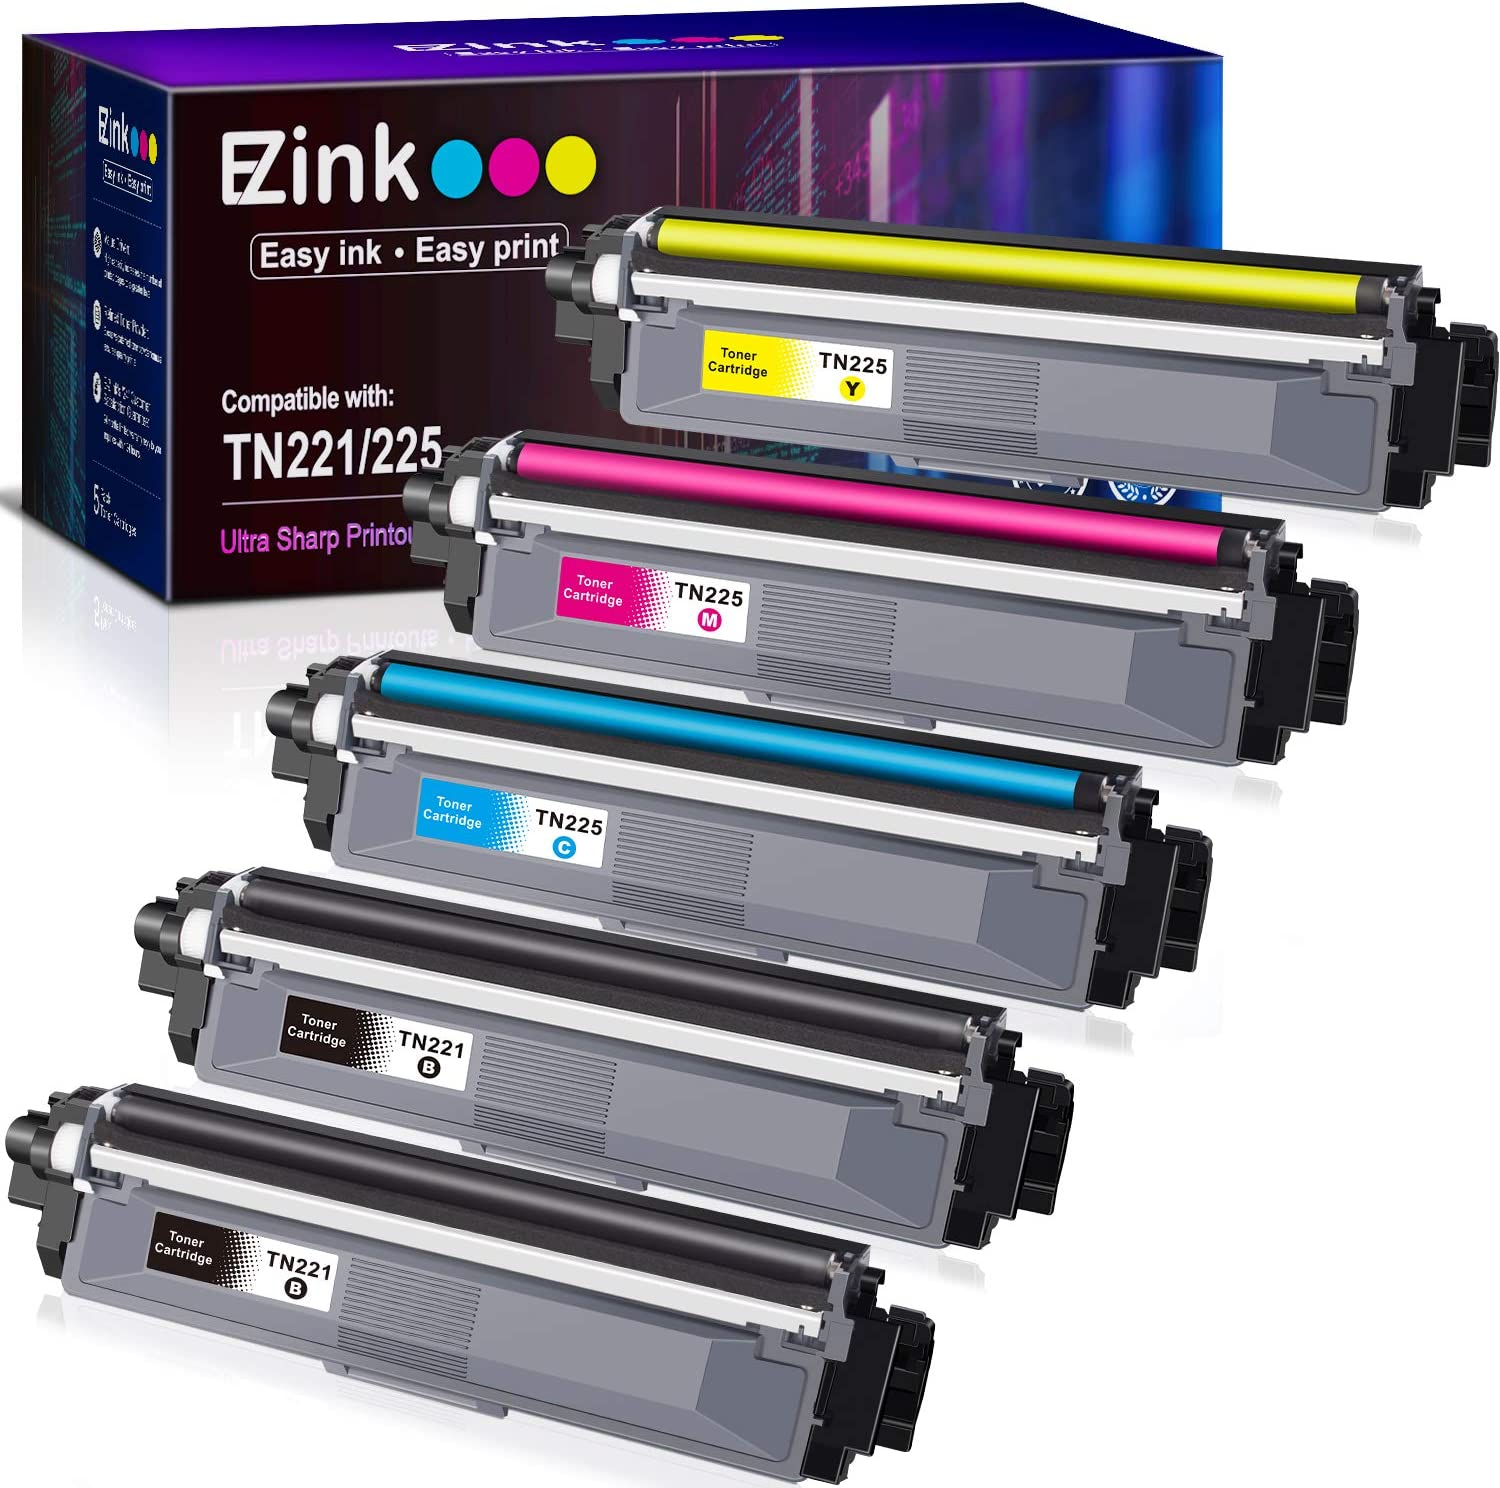 E-Z Ink (TM) Compatible Toner Cartridge Replacement for Brother TN221 TN225 to Use with HL-3140CW HL-3170CDW HL-3180 MFC-9130CW MFC-9330CDW MFC-9340CDW (2 Black, 1 Cyan, 1 Magenta, 1 Yellow) 5 Pack